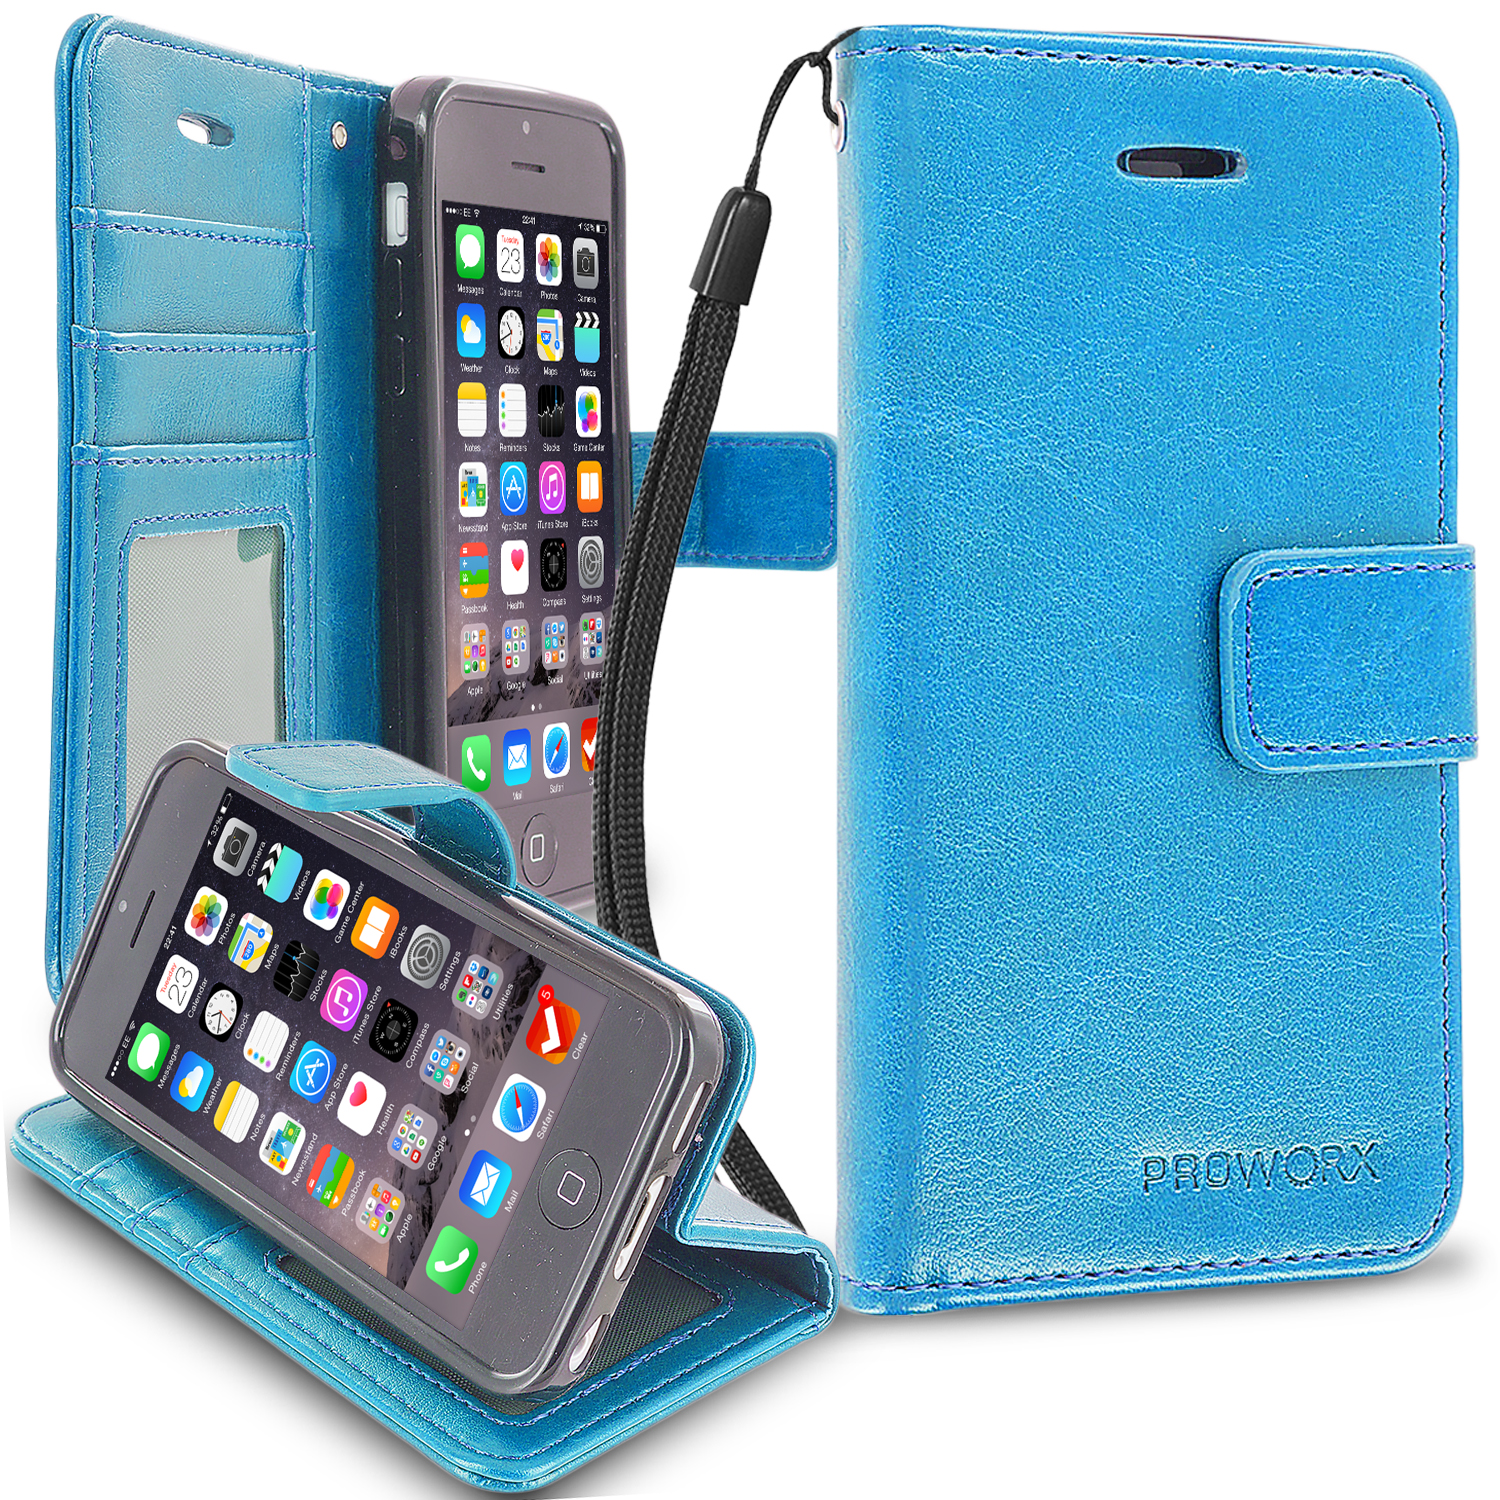 Apple iPhone 5C Baby Blue ProWorx Wallet Case Luxury PU Leather Case Cover With Card Slots & Stand